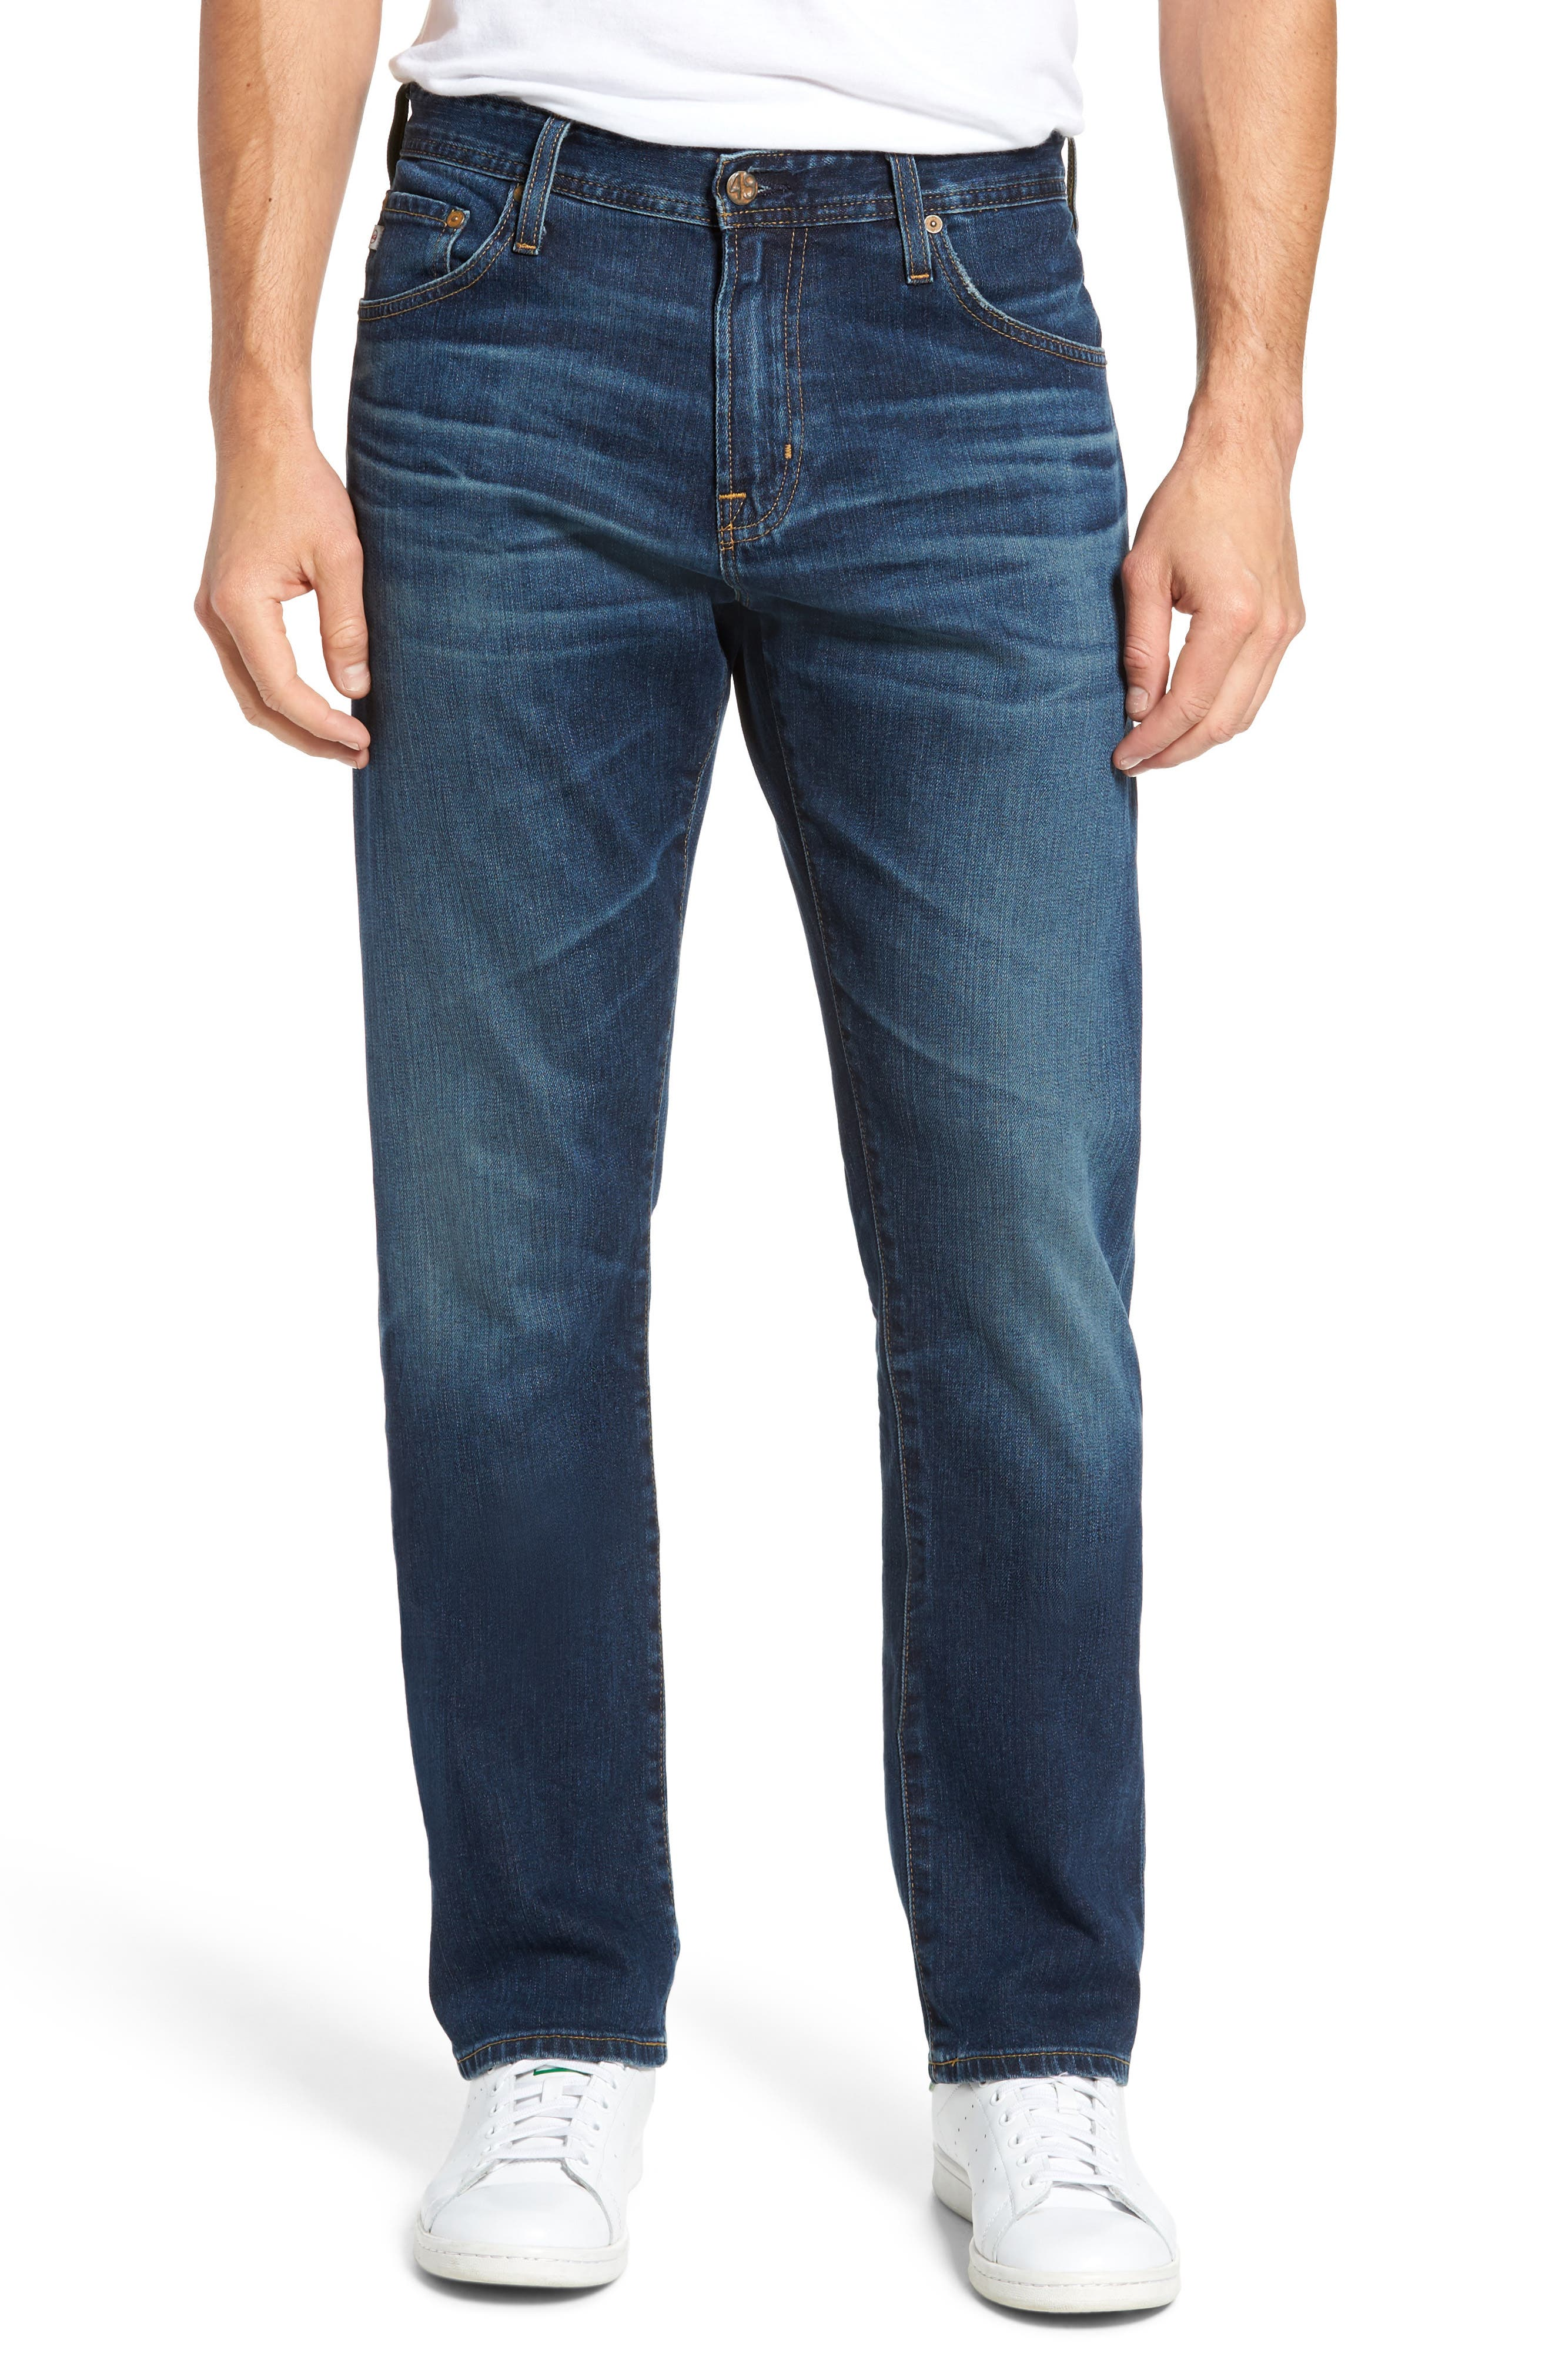 Ives Straight Leg Jeans,                         Main,                         color, 9 Years Hammer